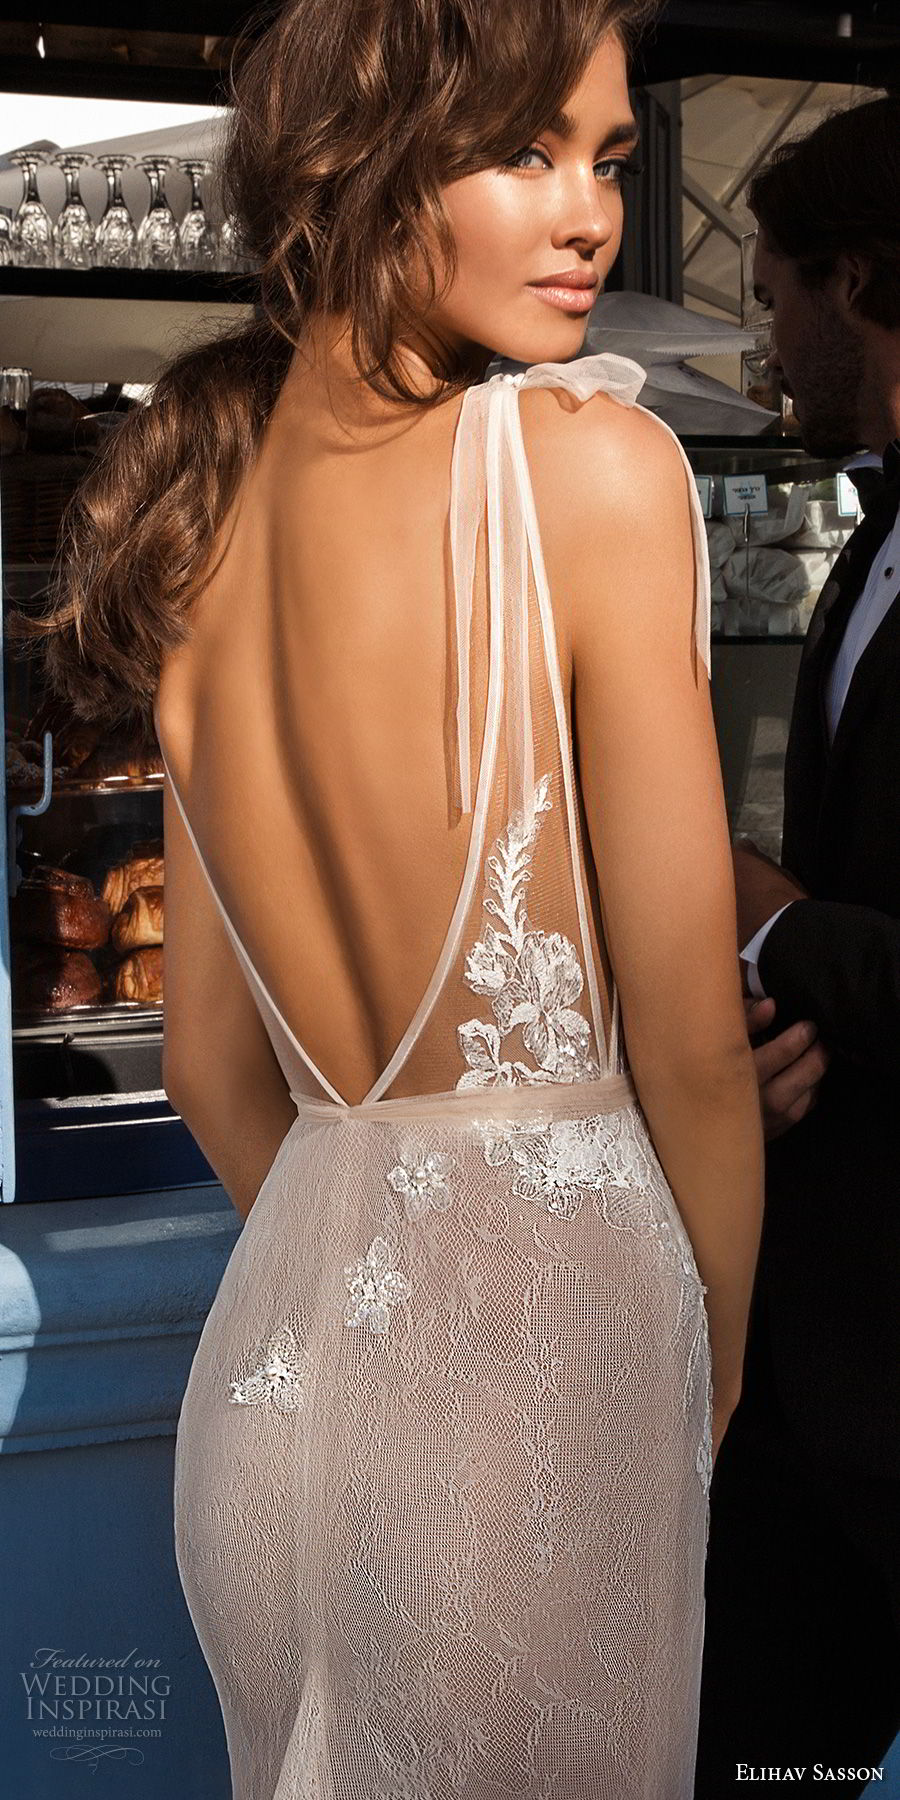 elihav sasson 2018 capsule bridal sleeveless deep v neck heavily embellished bodice side open sexy elegant sheath wedding dress open v back chapel train (4) zbv